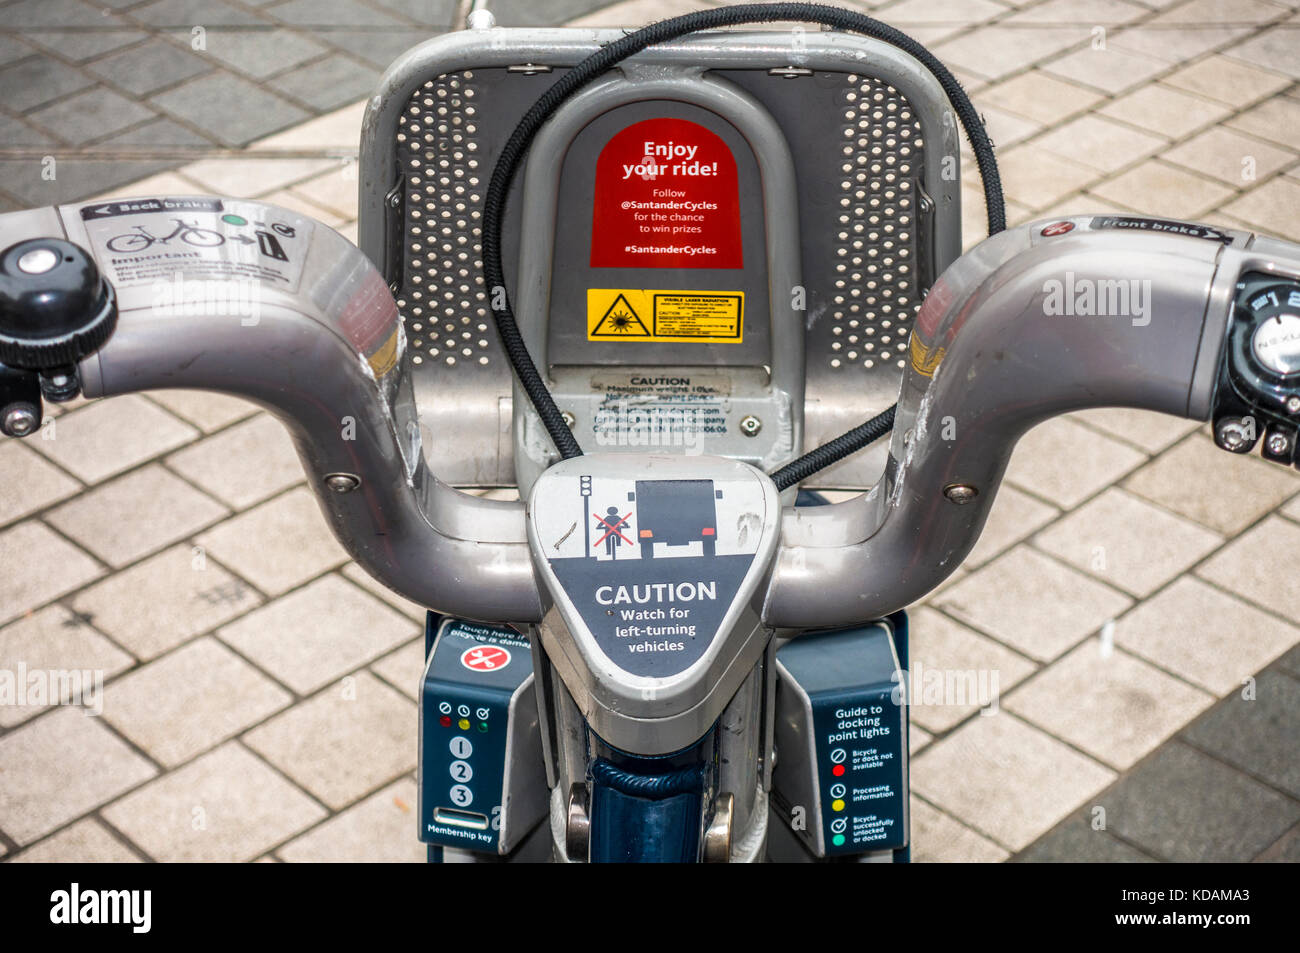 Transport for London - TFL - close view of a Santander pay-as-you-go cycle with instructions for use, at a docking - Stock Image